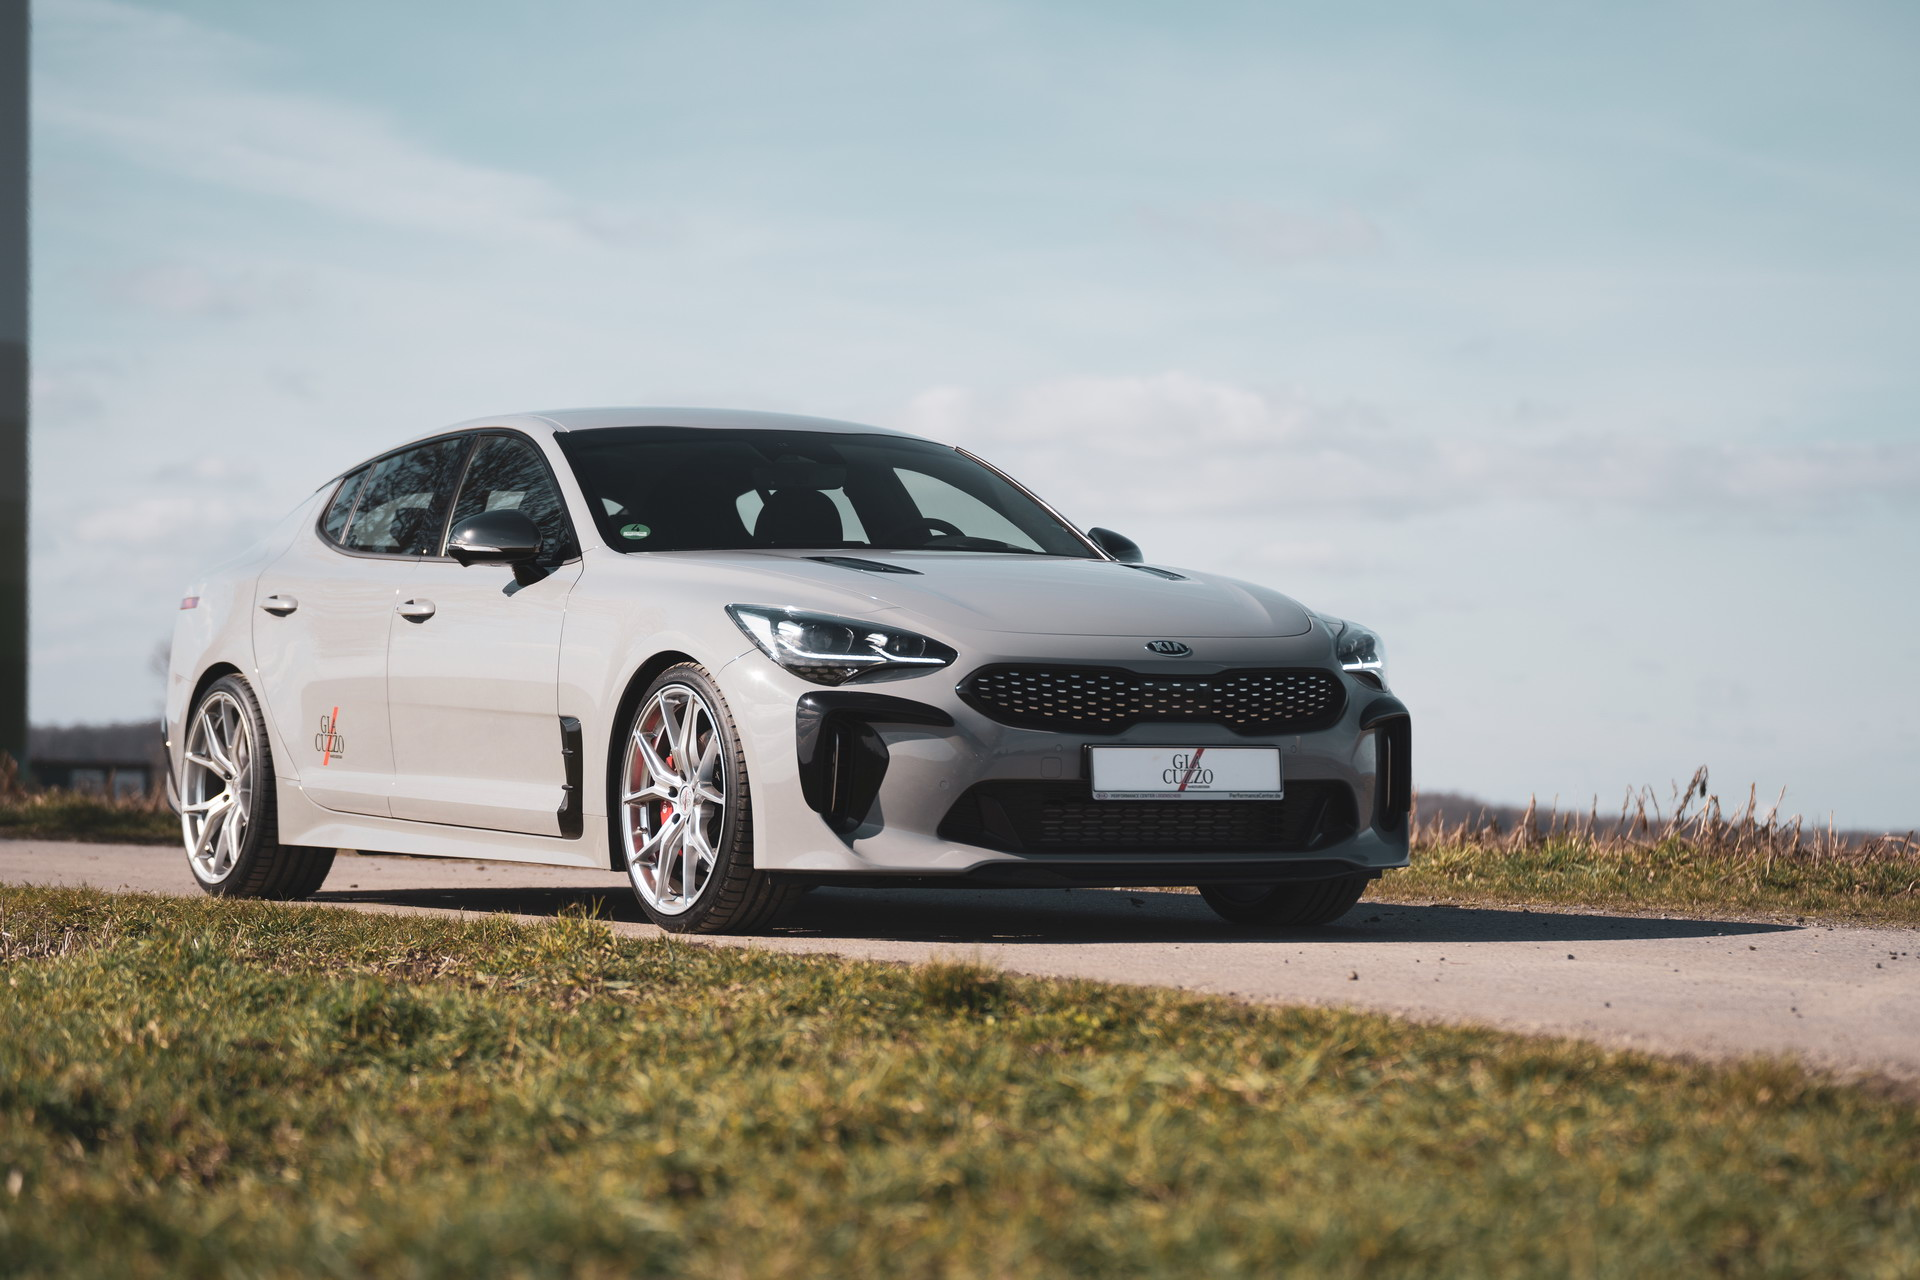 With Audi, BMW and Mercedes cars being recognized and loved worldwide, German people have every reason to be proud of their automotive industry. But when local customization shops get tired of tuning these, something like a Kia Stinger may be a nice distraction.